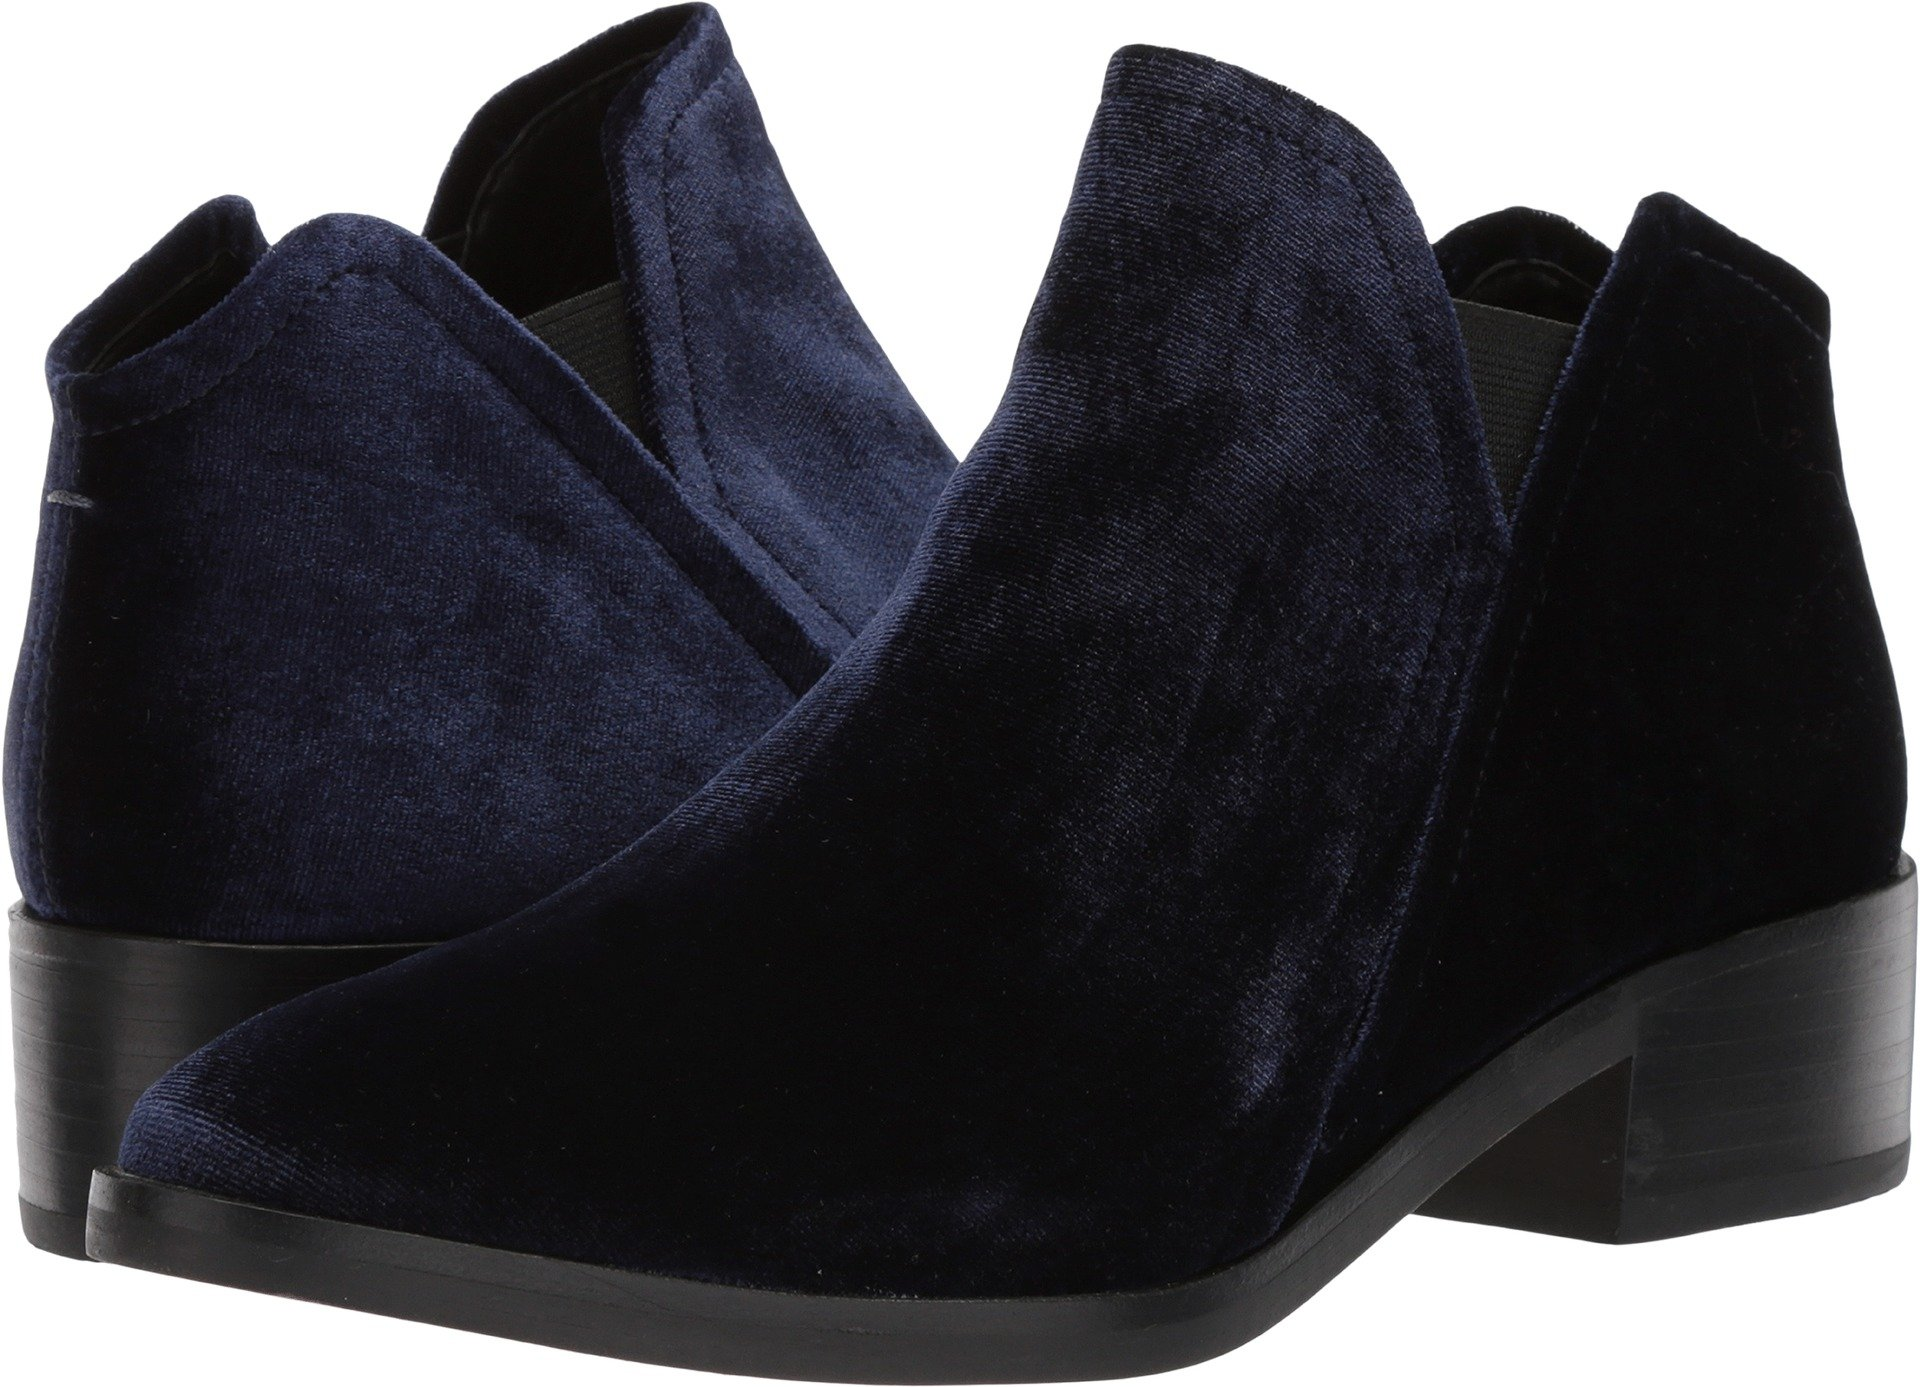 Dolce Vita Women's Tay Ankle Boot, Navy, 9.5 M US